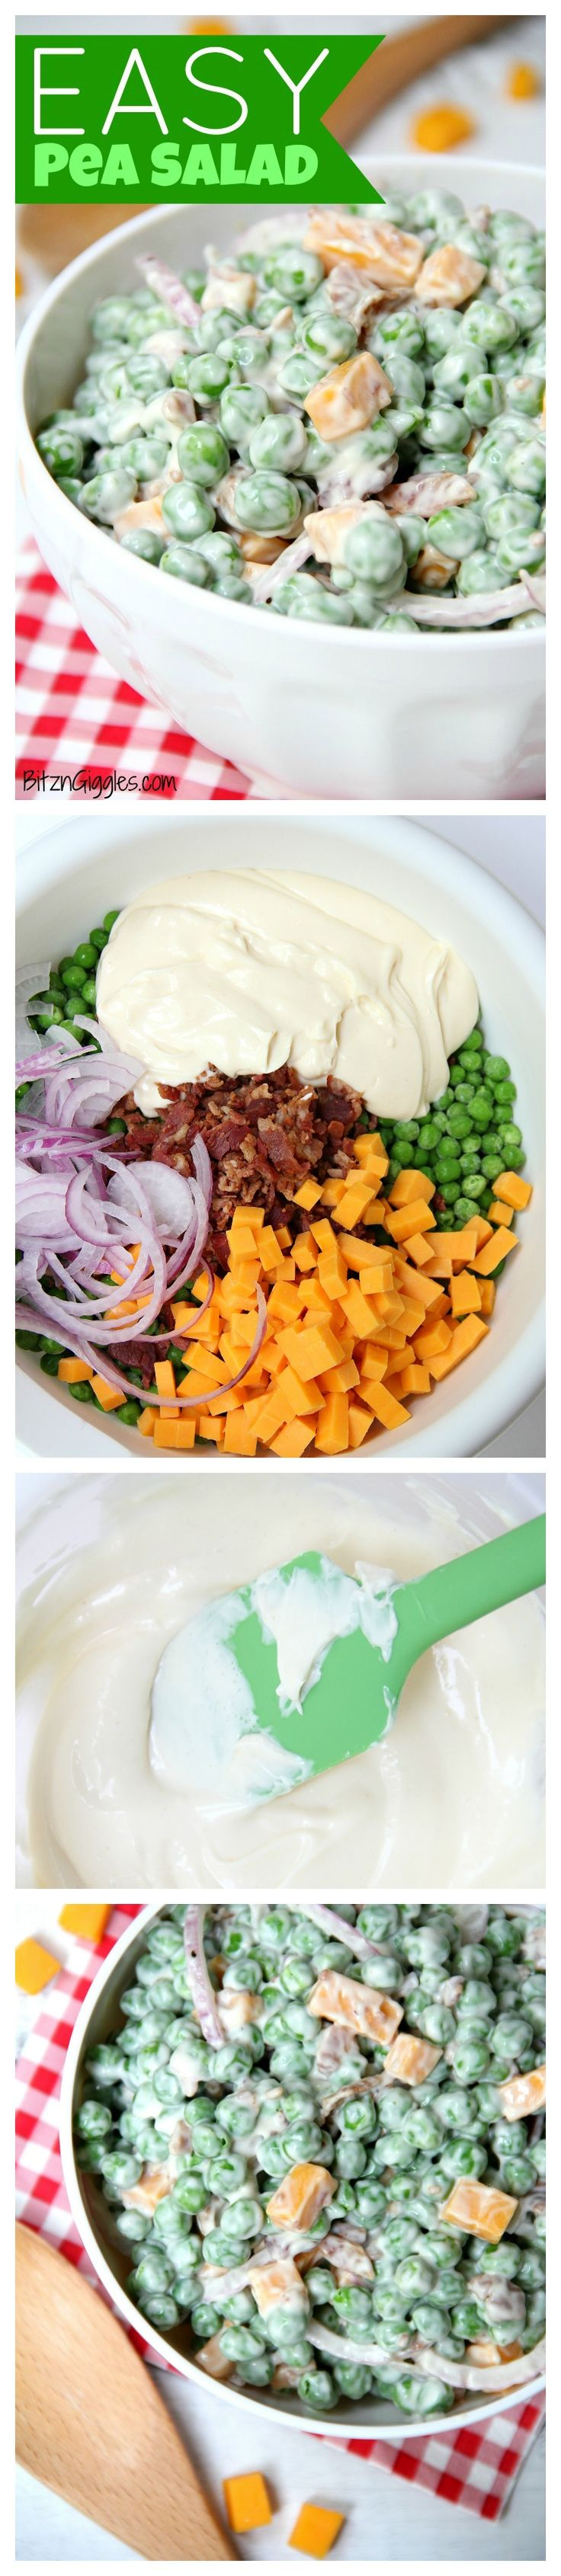 Easy Pea Salad - A summer salad perfect for potlucks and gatherings. Crisp green peas float alongside bacon, cheddar cheese and thinly sliced red onion in a sweet and creamy dressing.